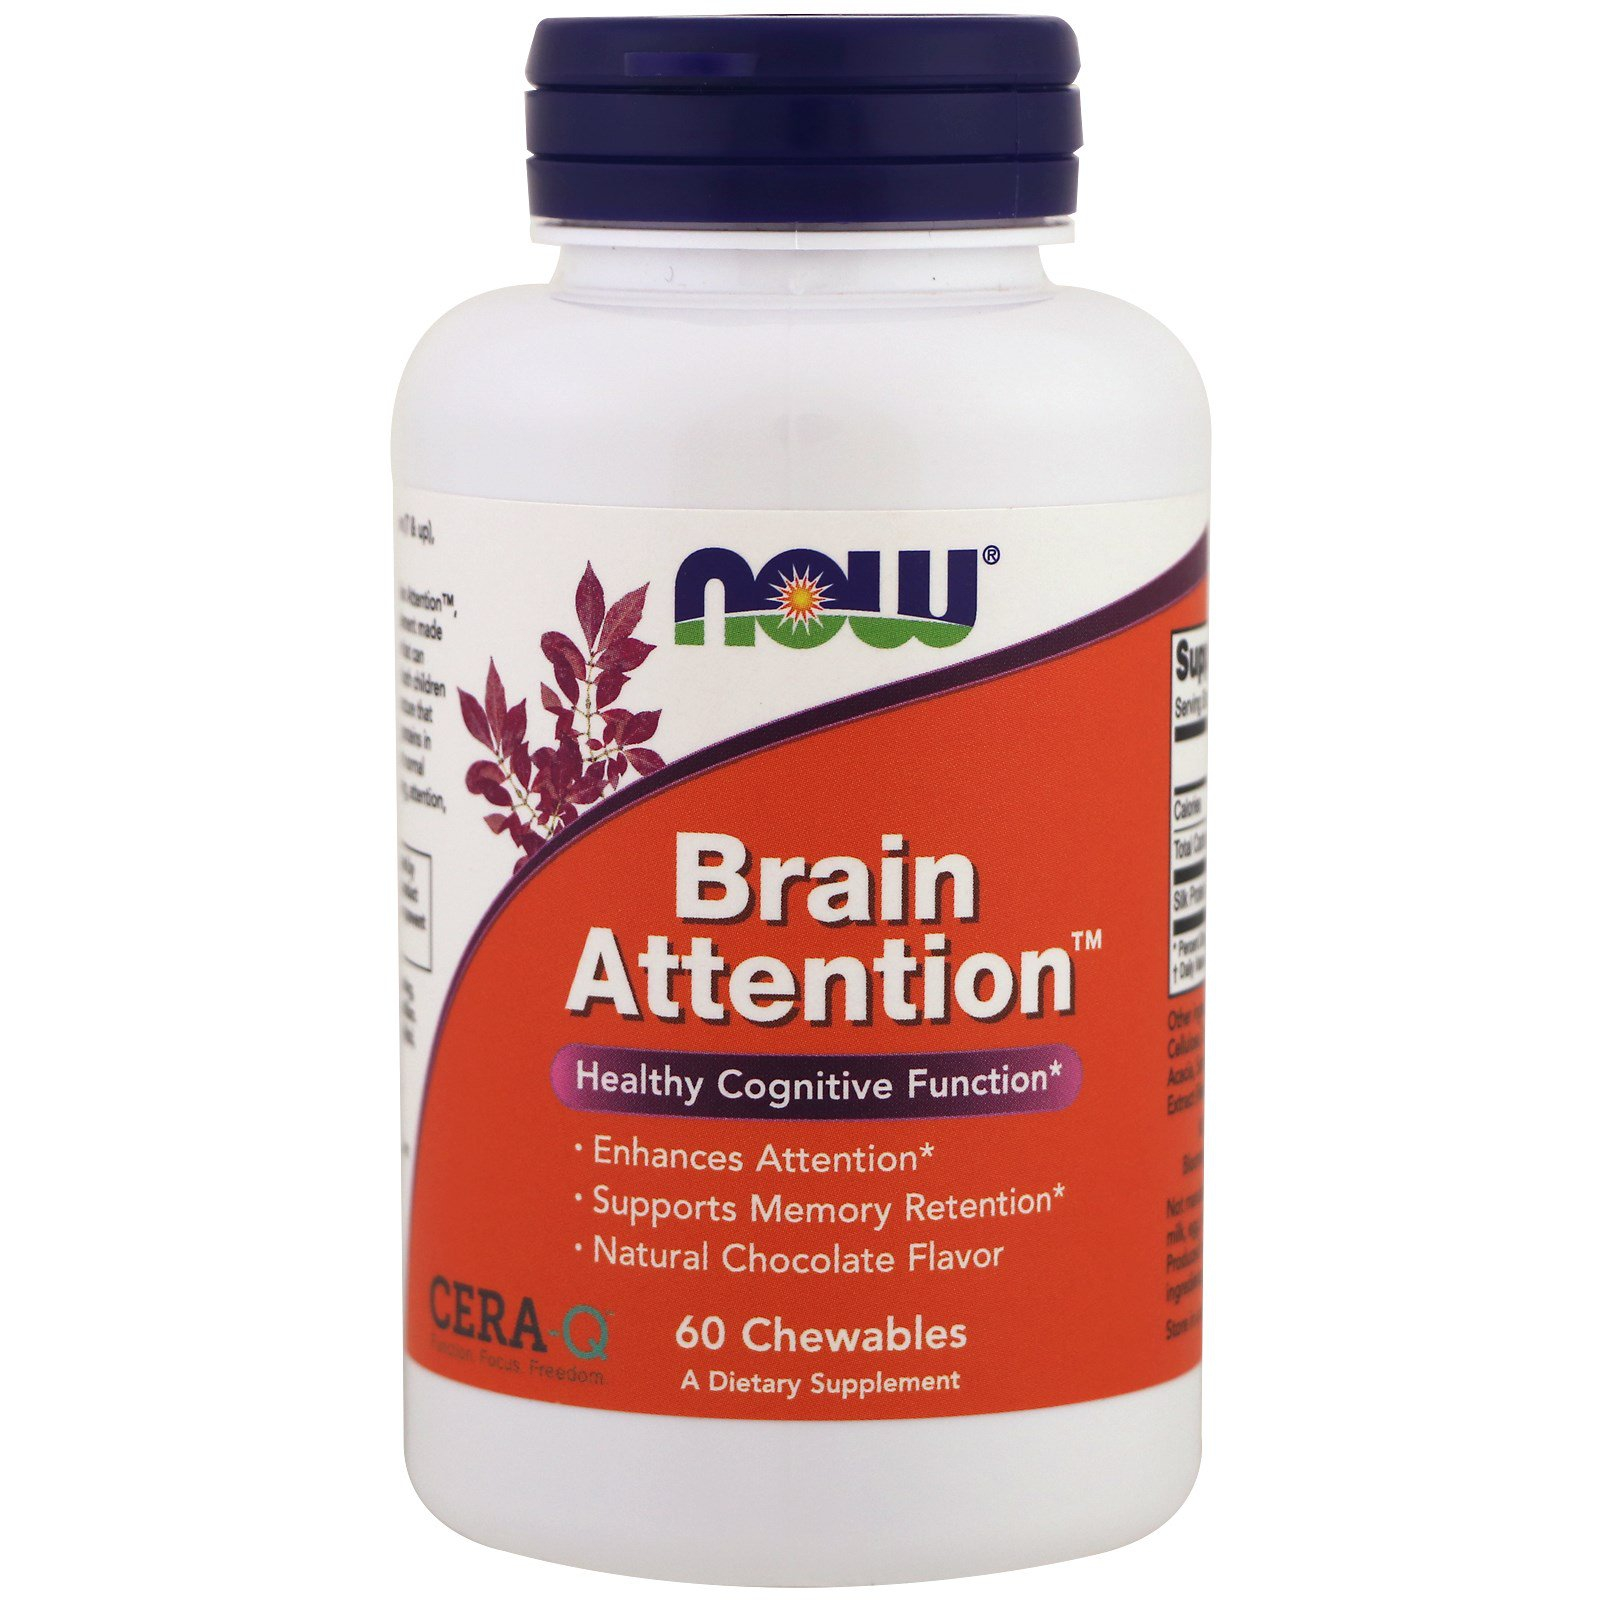 Image of Brain Attention- Natural Chocolate Flavor (60 chewable tablets) - Now Foods 0733739023971